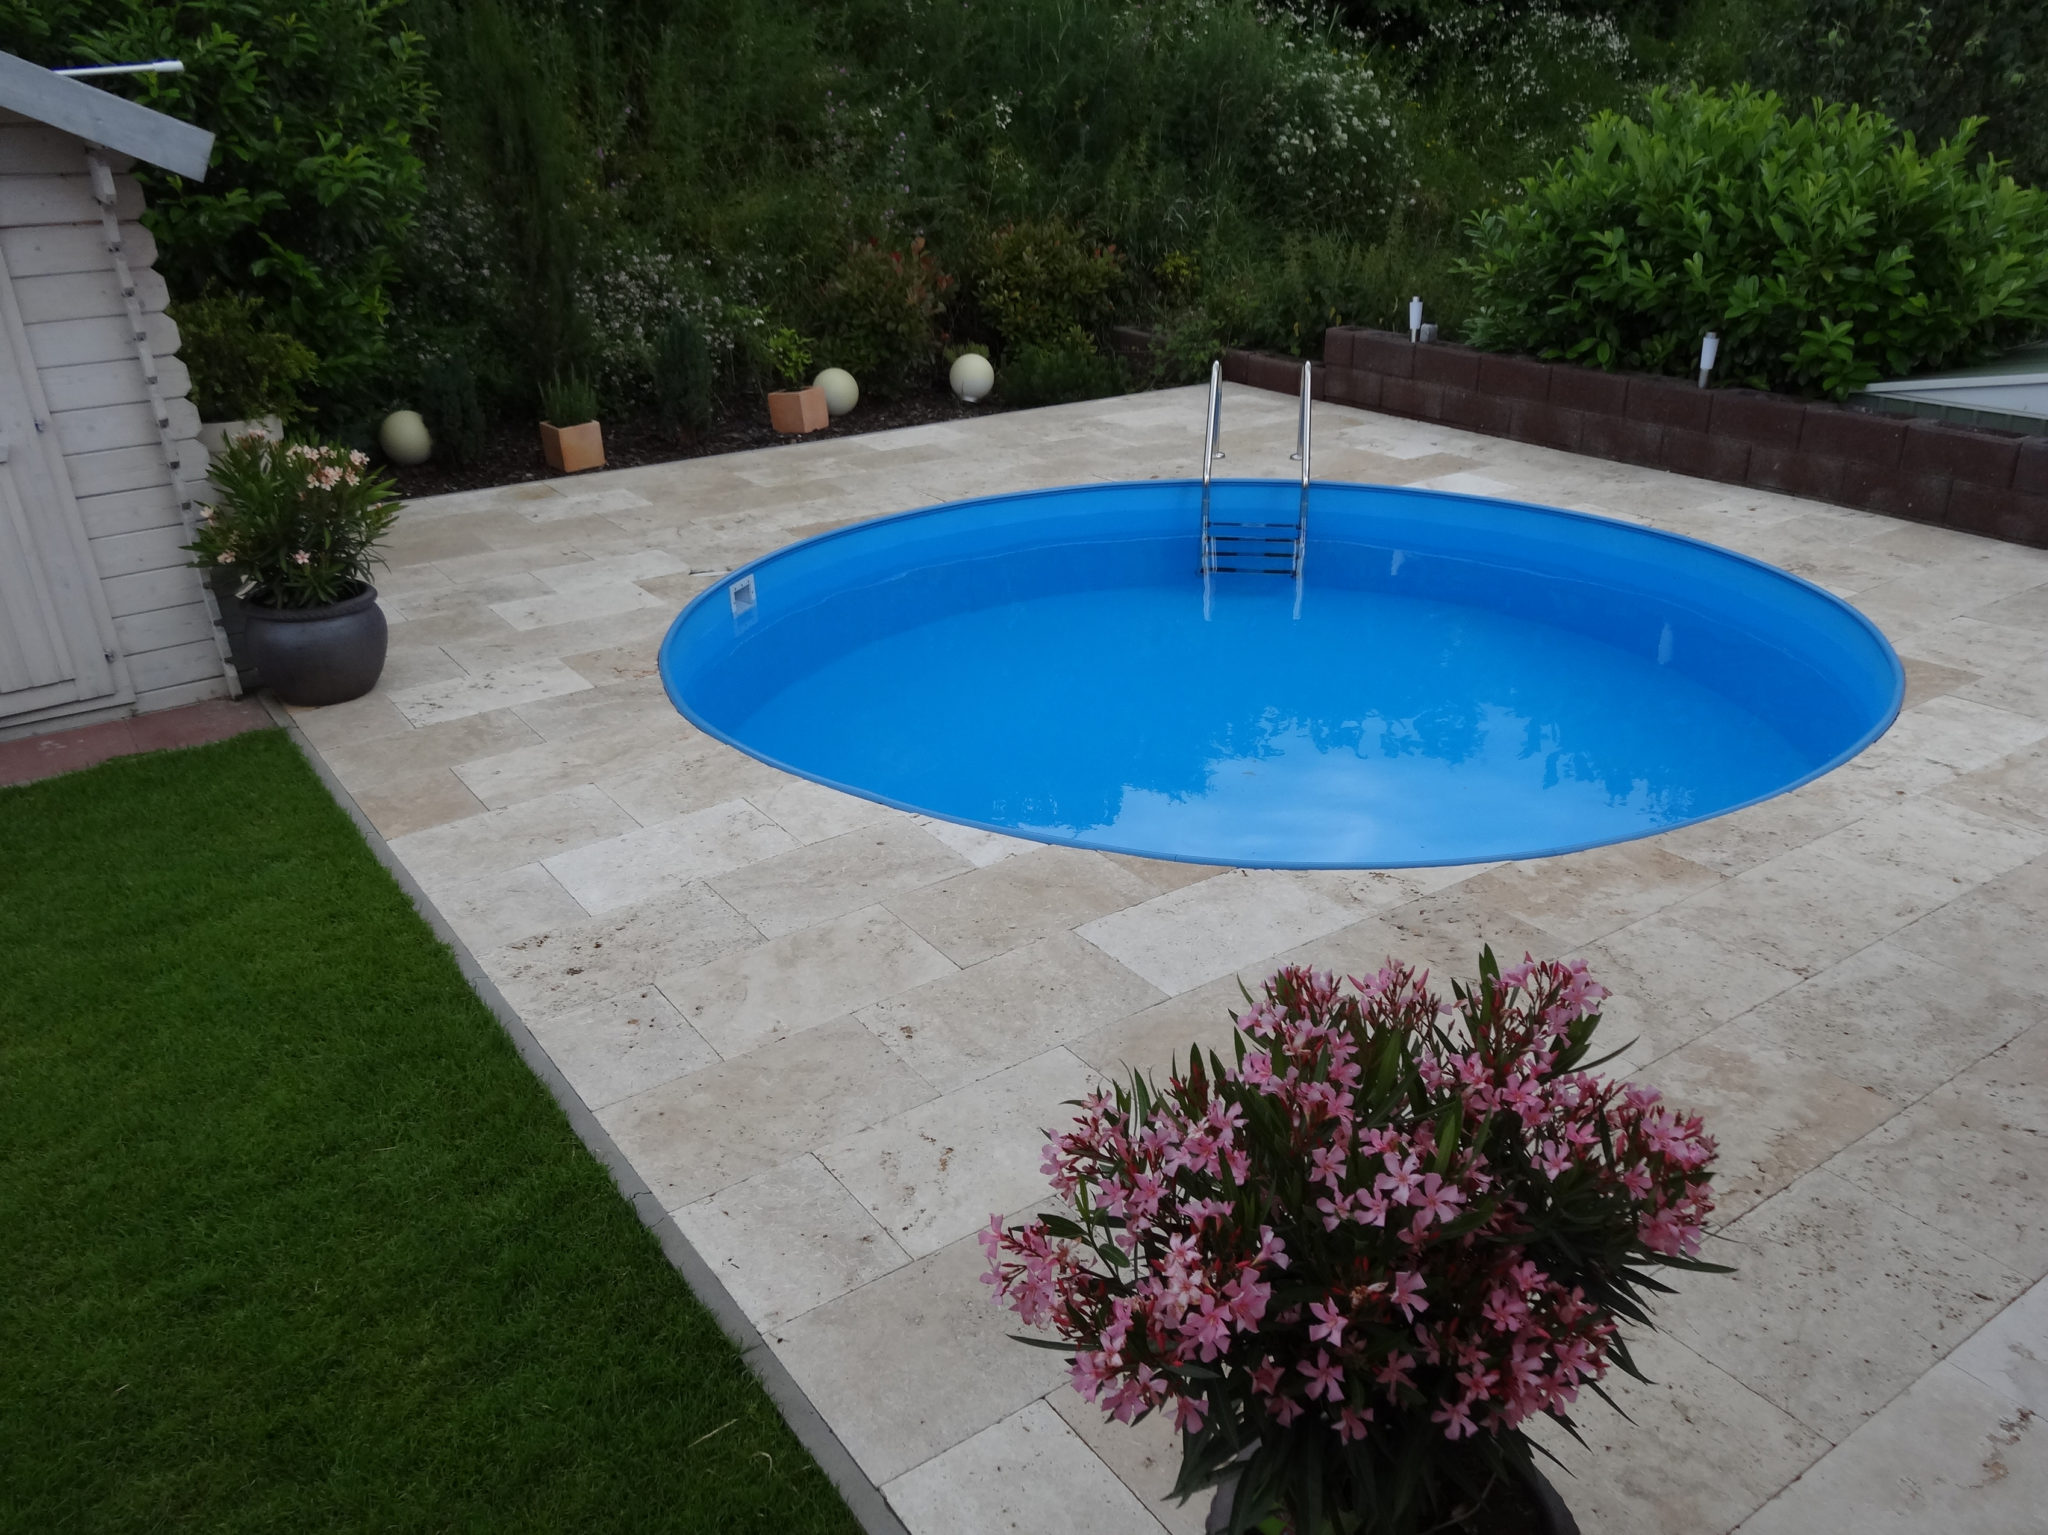 Tile Around Pool : Travertine tiles from turkey around a swimming pool